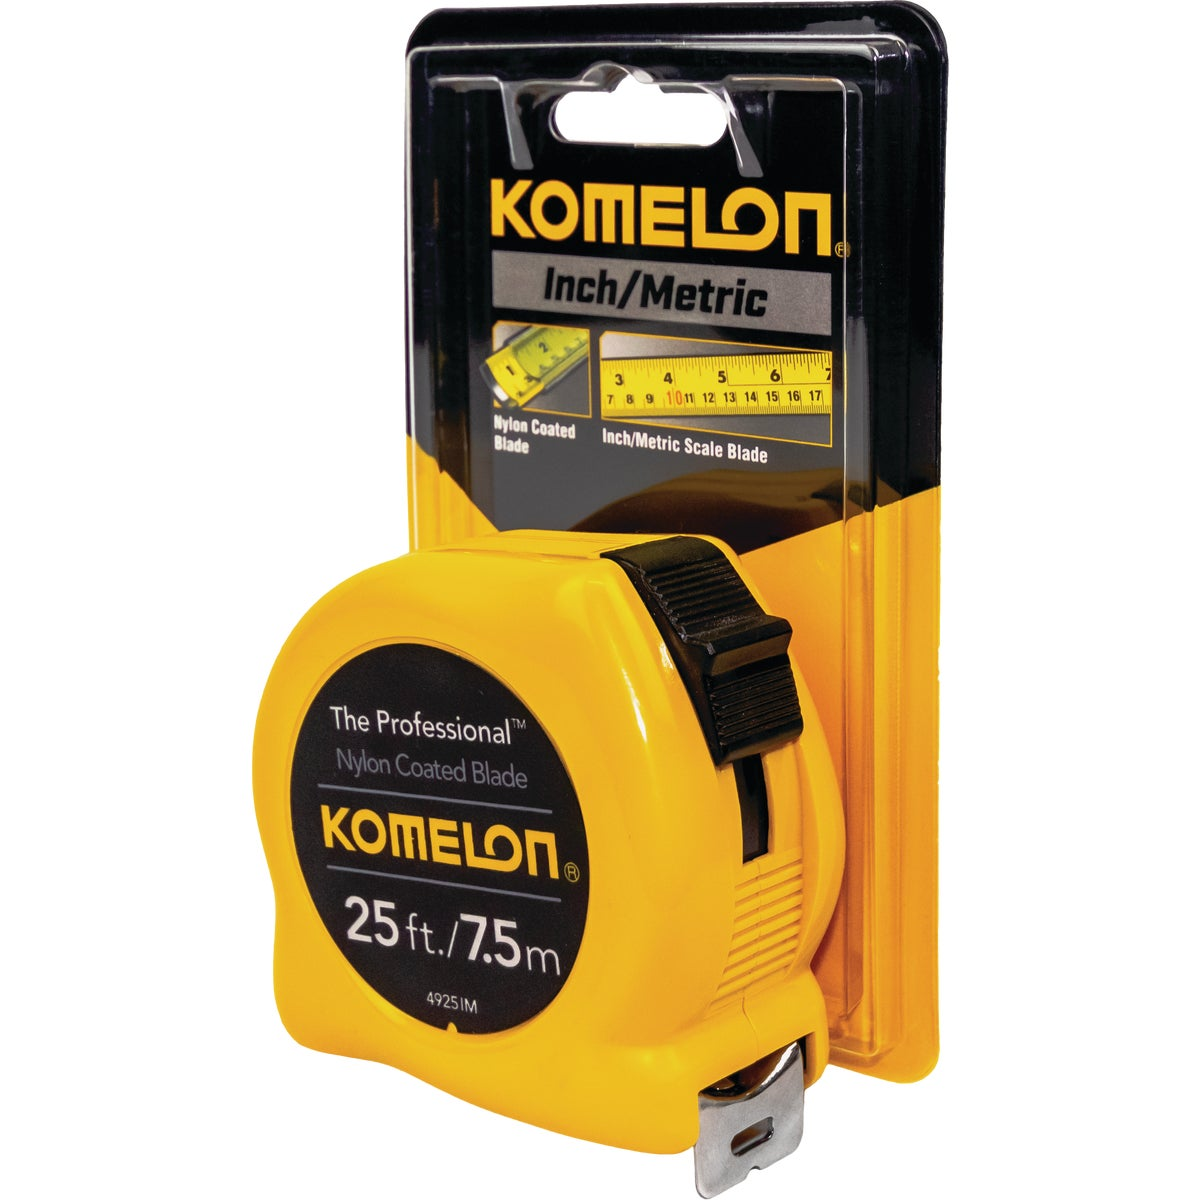 "1""X25'/7.5M TAPE RULE - 4925IM by Komelon Usa Corp"